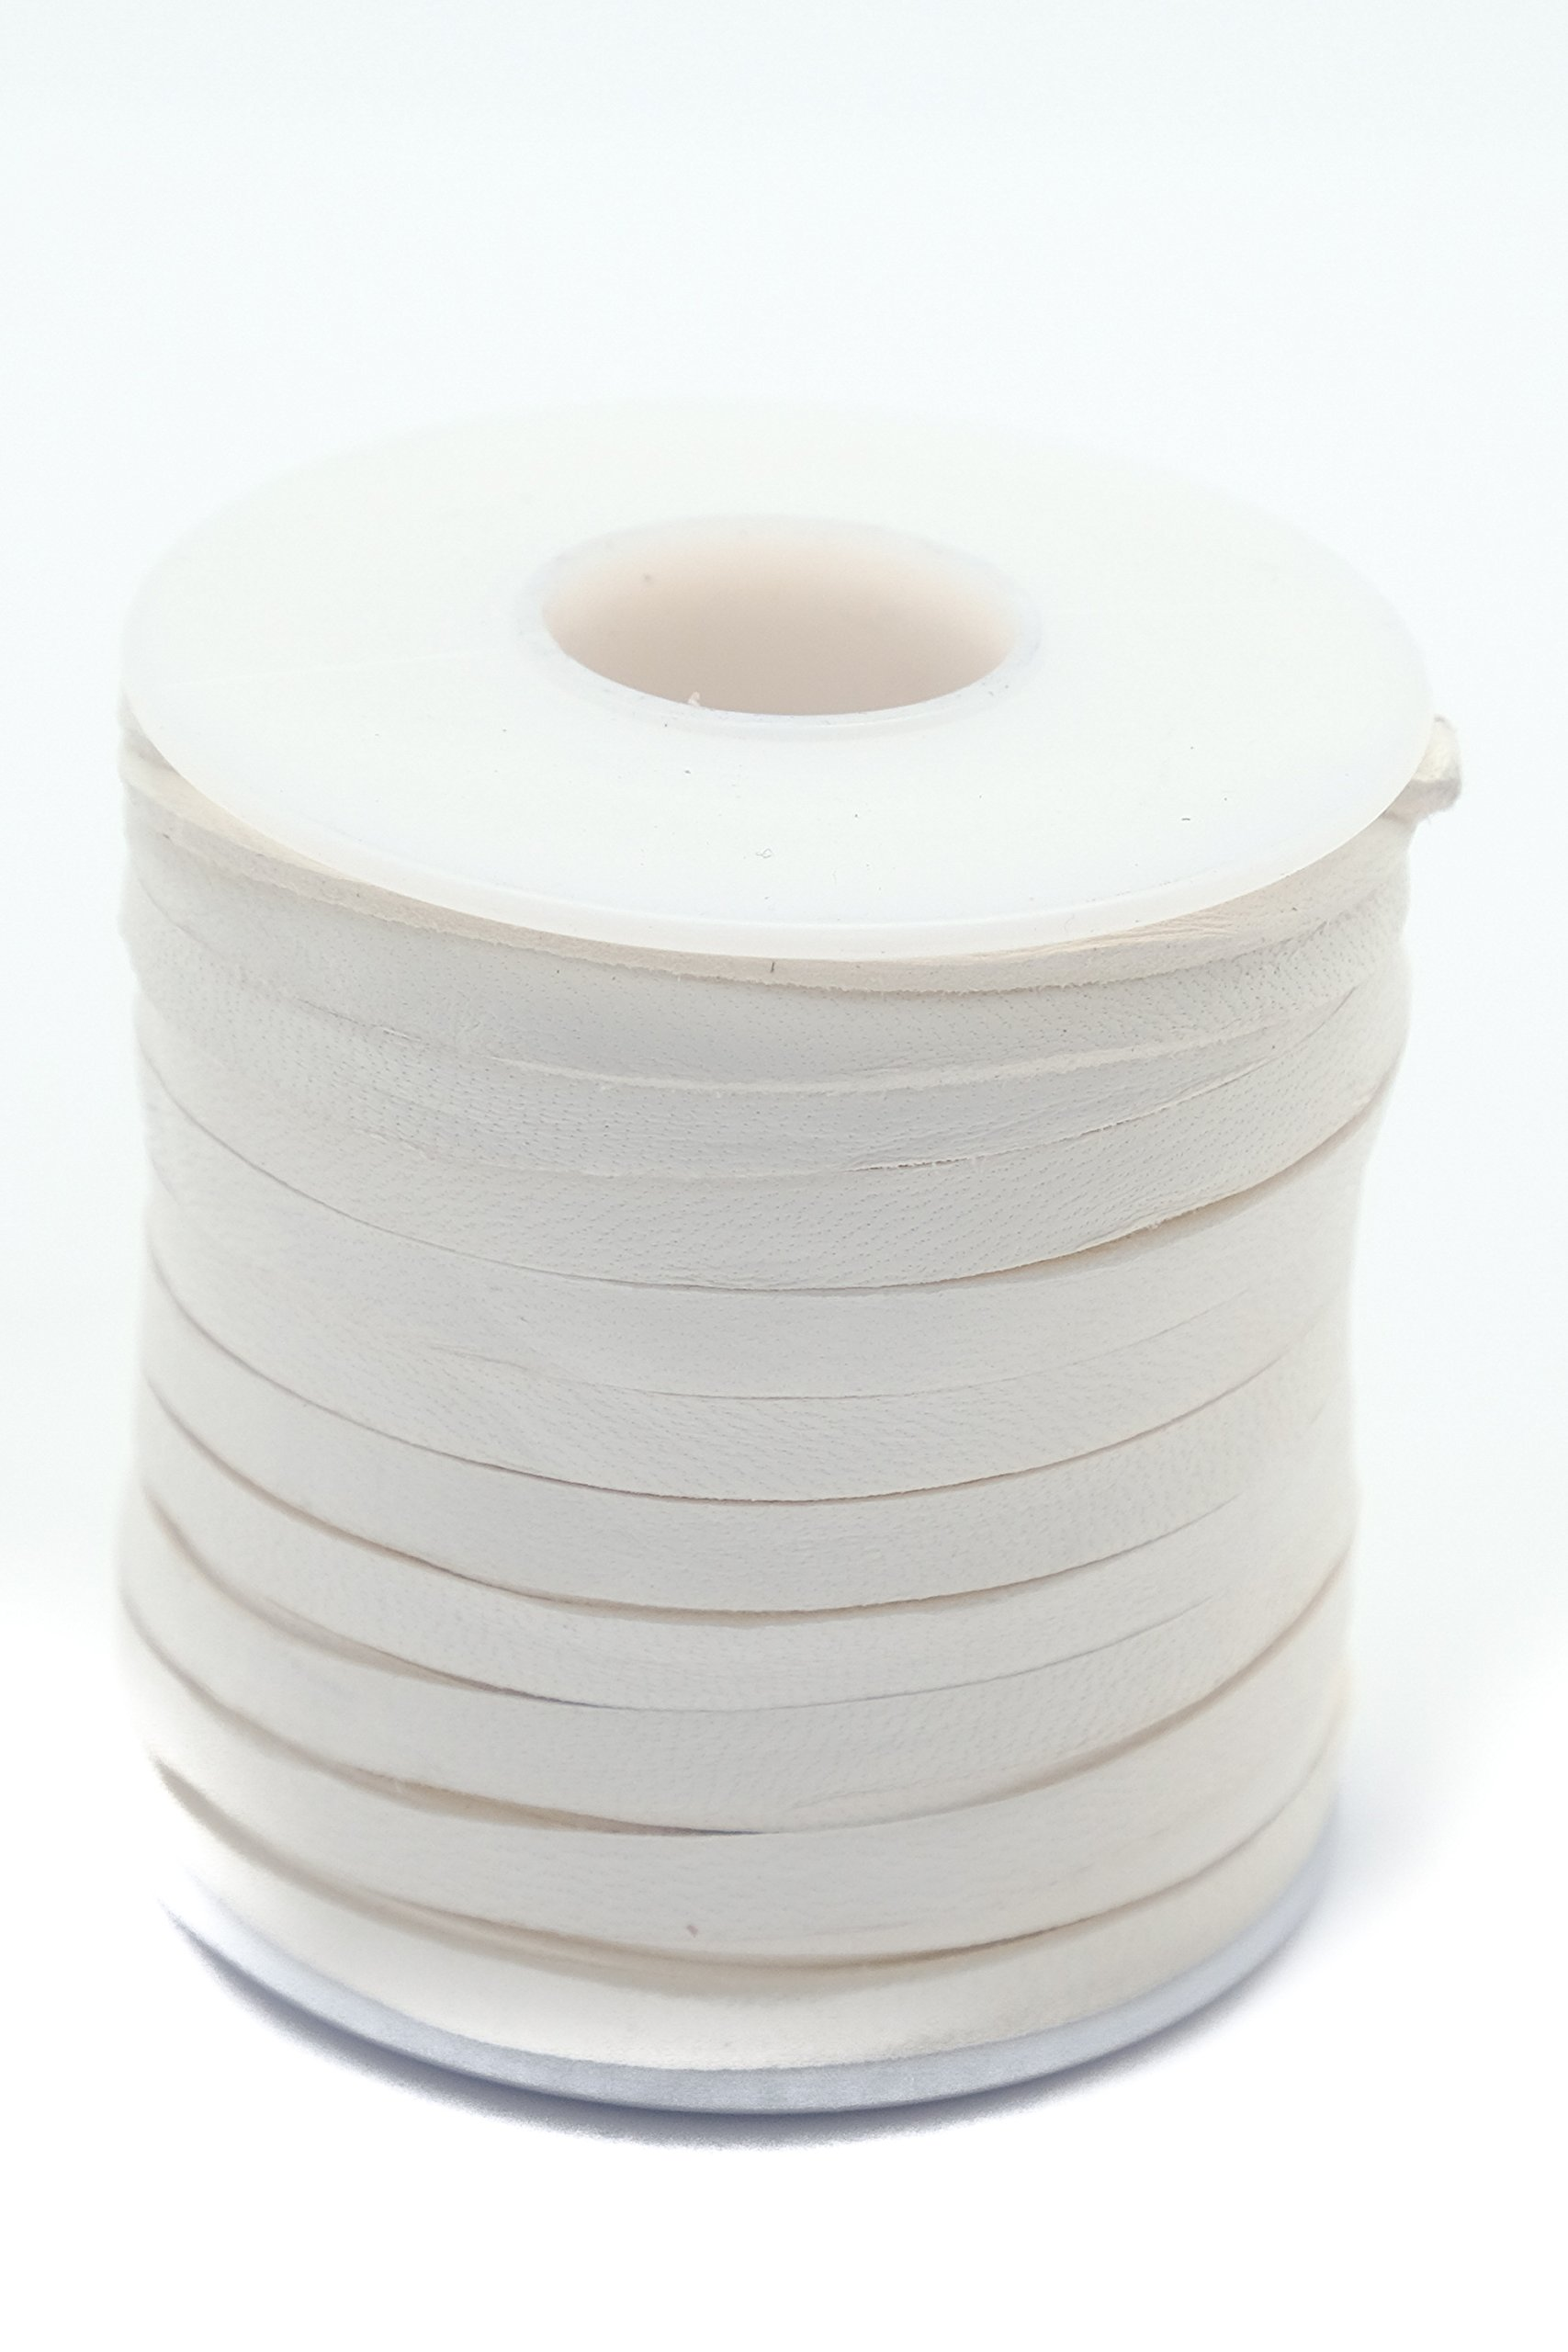 Springfield Leather Company 3/16''x50ft White Colored Leather Deer Lace